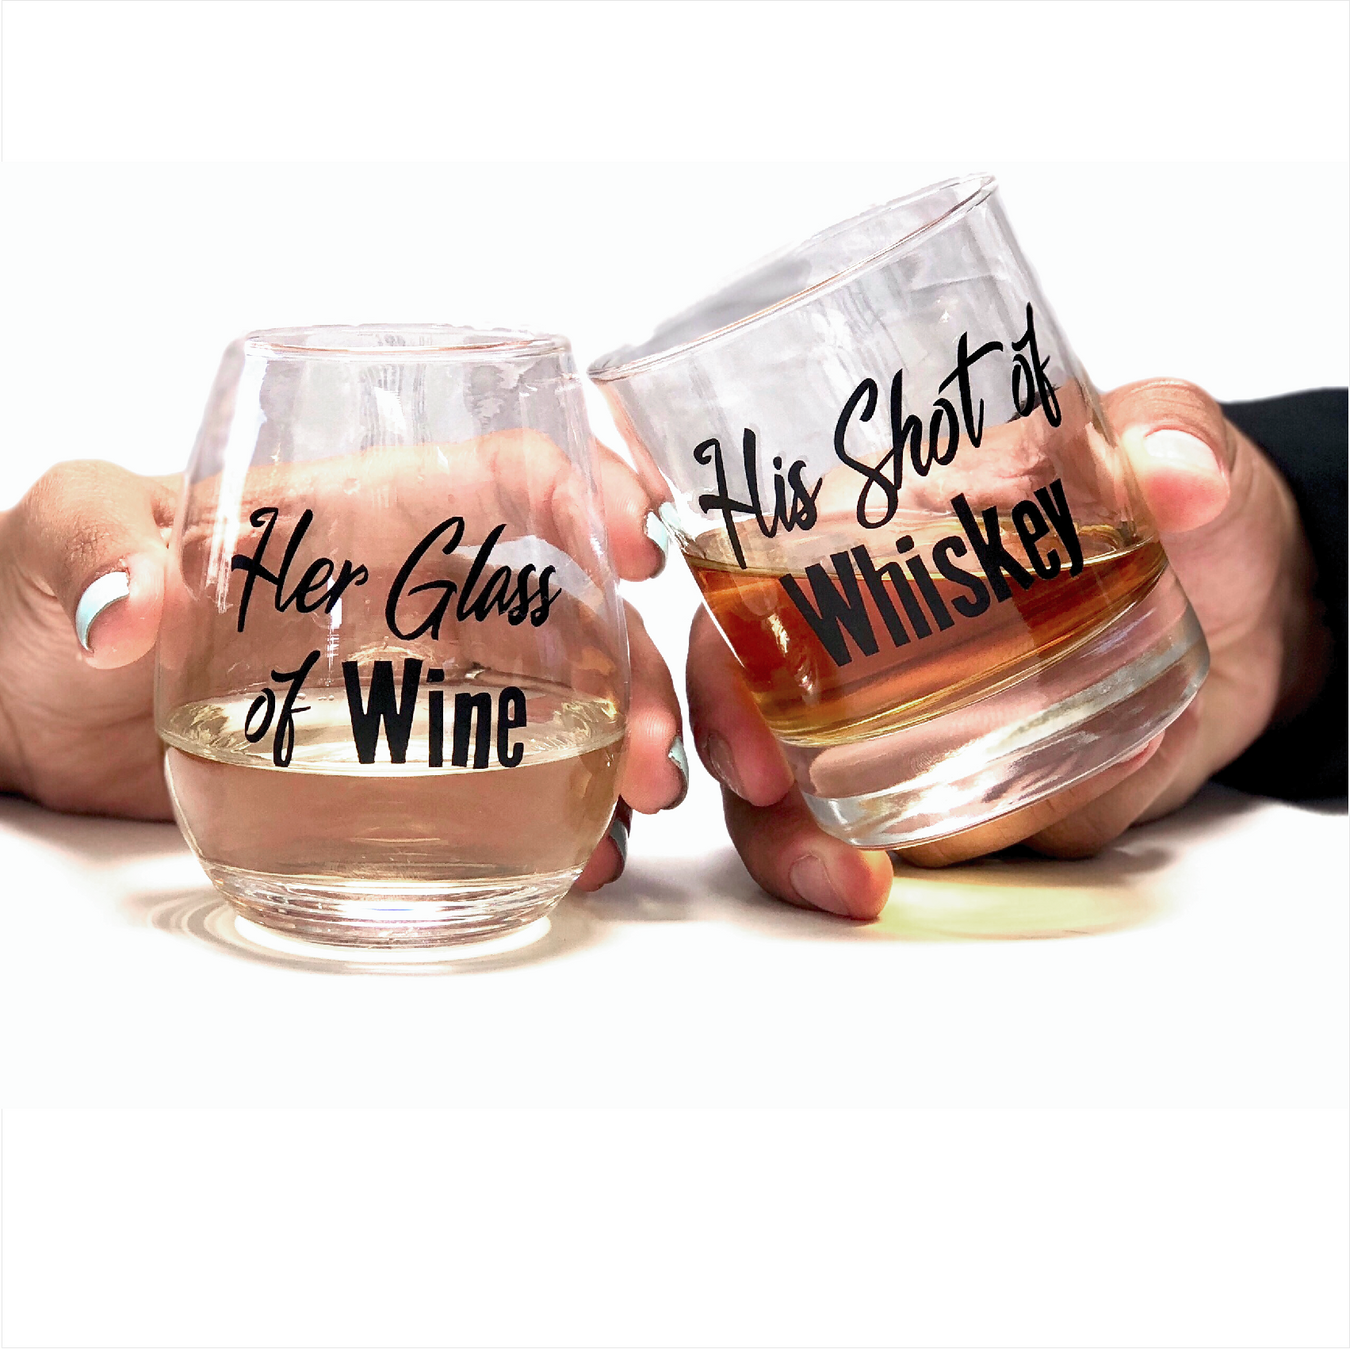 Her glass of wine, his shot of whiskey, his and her glasses, couples glasses, whiskey and wine glasses, couples gift sets, wedding gift, whiskey gift, stemless wine glass, ScissorMill.com